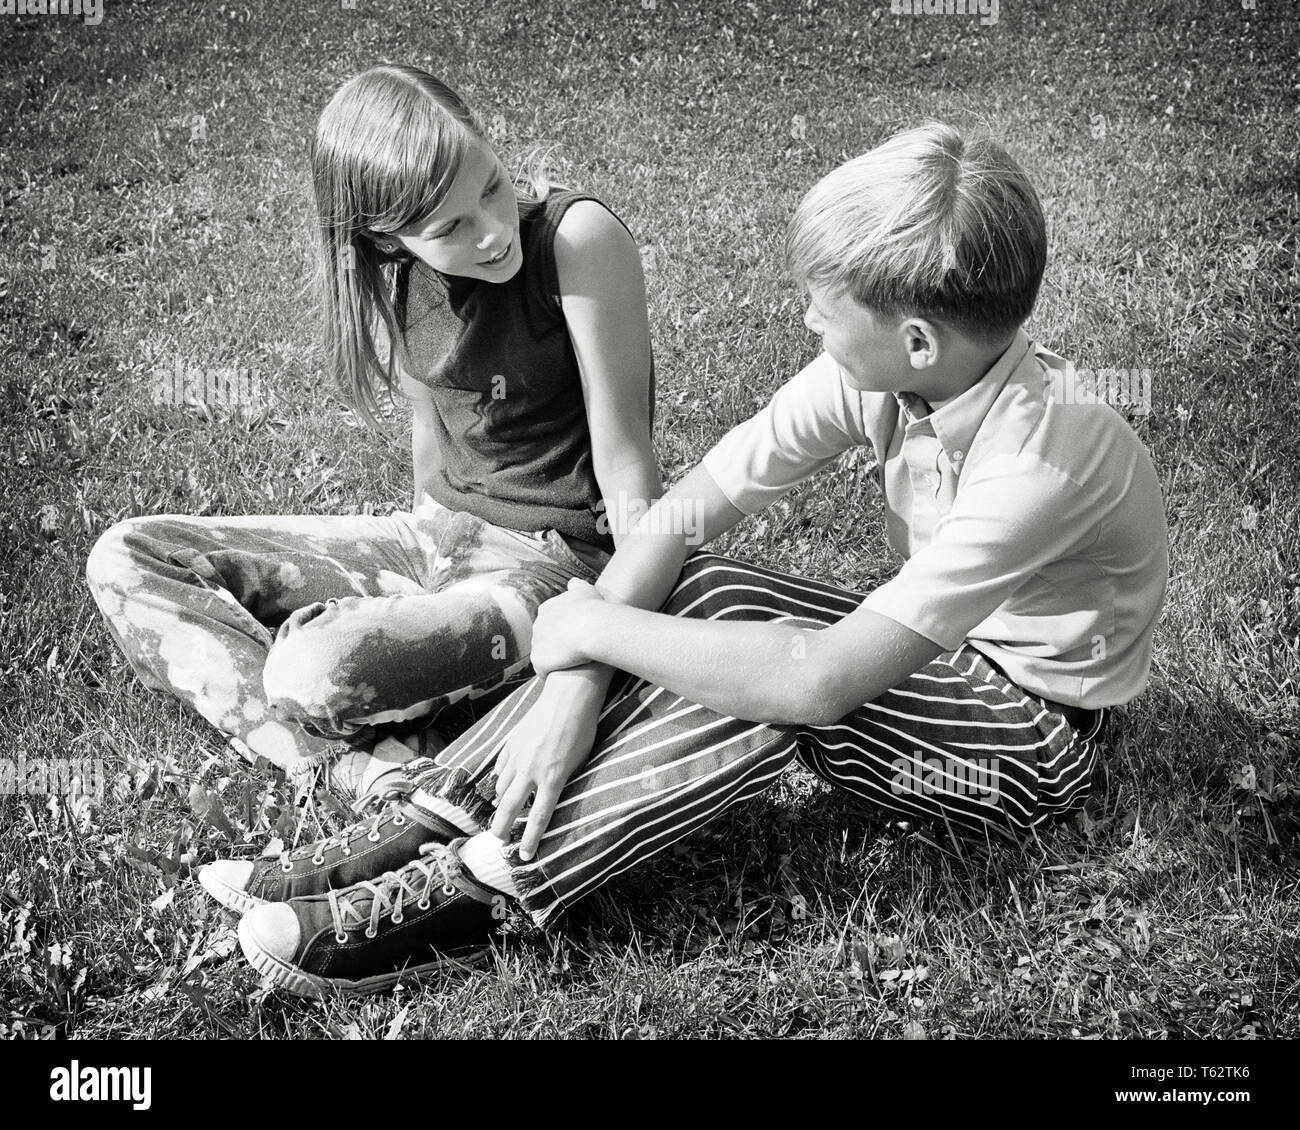 1970s BOY AND GIRL SITTING IN GRASS TALKING WEARING SUMMER CLOTHES SNEAKERS - j12933 HAR001 HARS FRIENDSHIP HALF-LENGTH BOYFRIEND MALES SNEAKERS SIBLINGS SISTERS B&W SUMMERTIME GIRLFRIEND HIGH ANGLE LEISURE AND TELLING SIBLING CONNECTION FRIENDLY STYLISH JUVENILES PRE-TEEN PRE-TEEN BOY PRE-TEEN GIRL TOGETHERNESS BLACK AND WHITE CAUCASIAN ETHNICITY HAR001 OLD FASHIONED - Stock Image